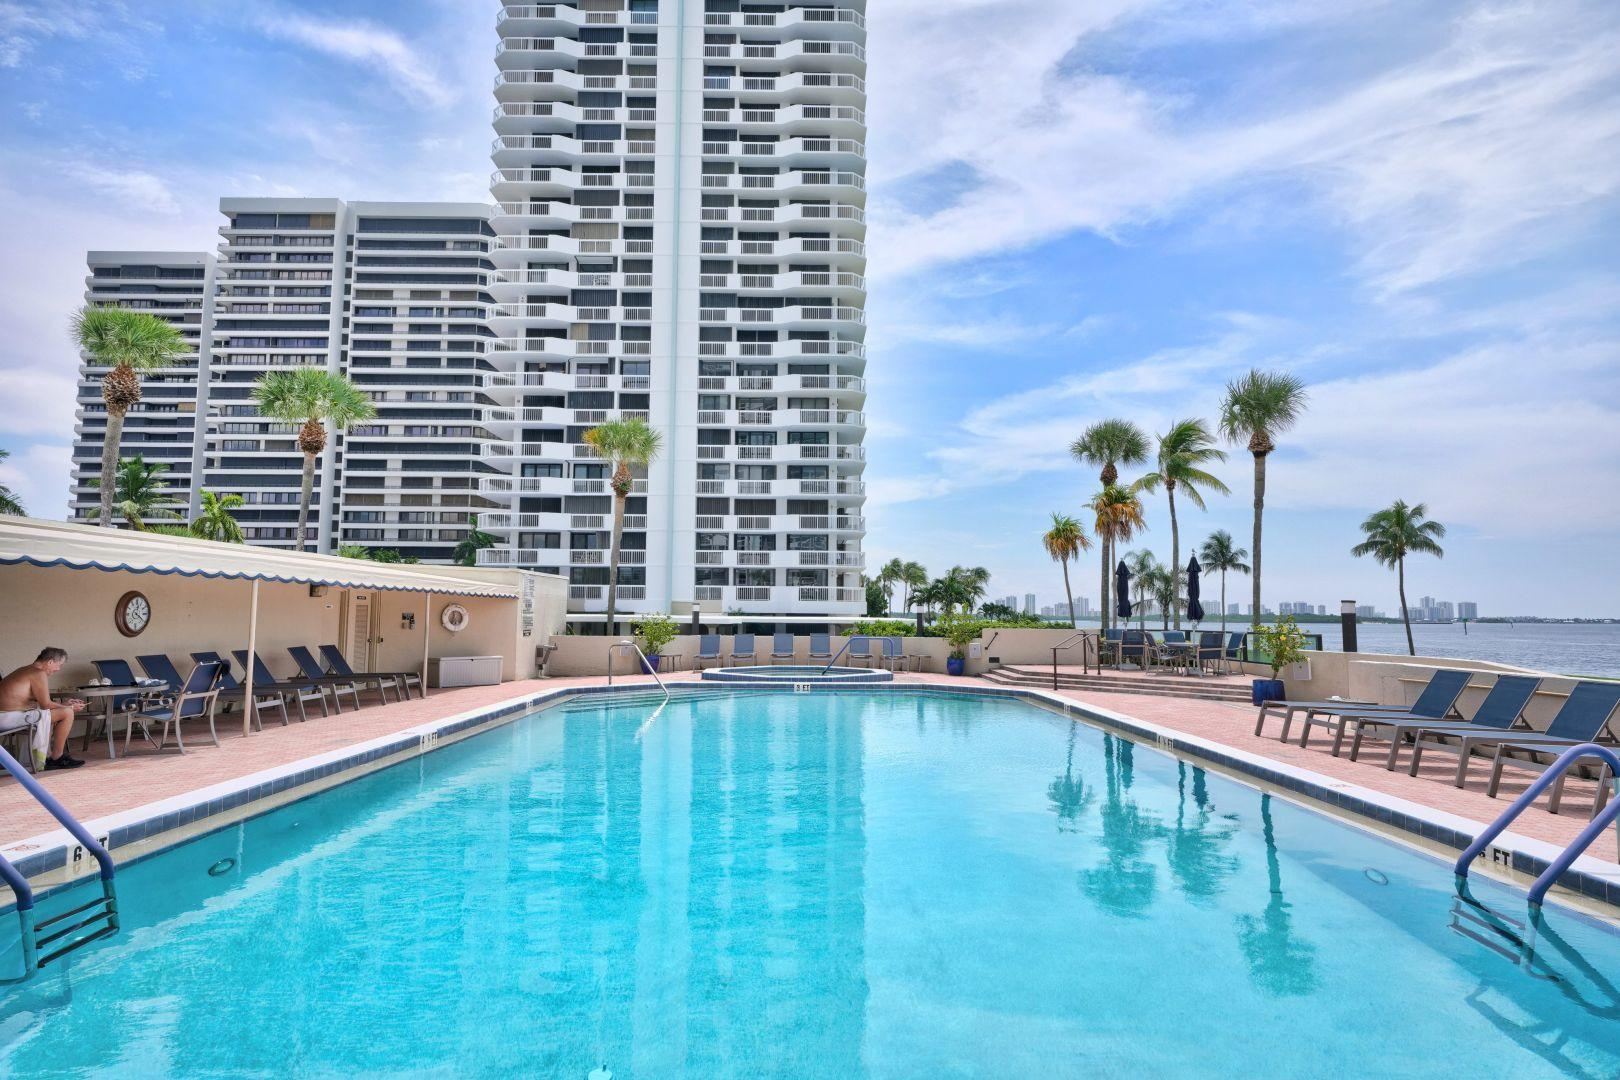 COVE TOWER HOMES FOR SALE